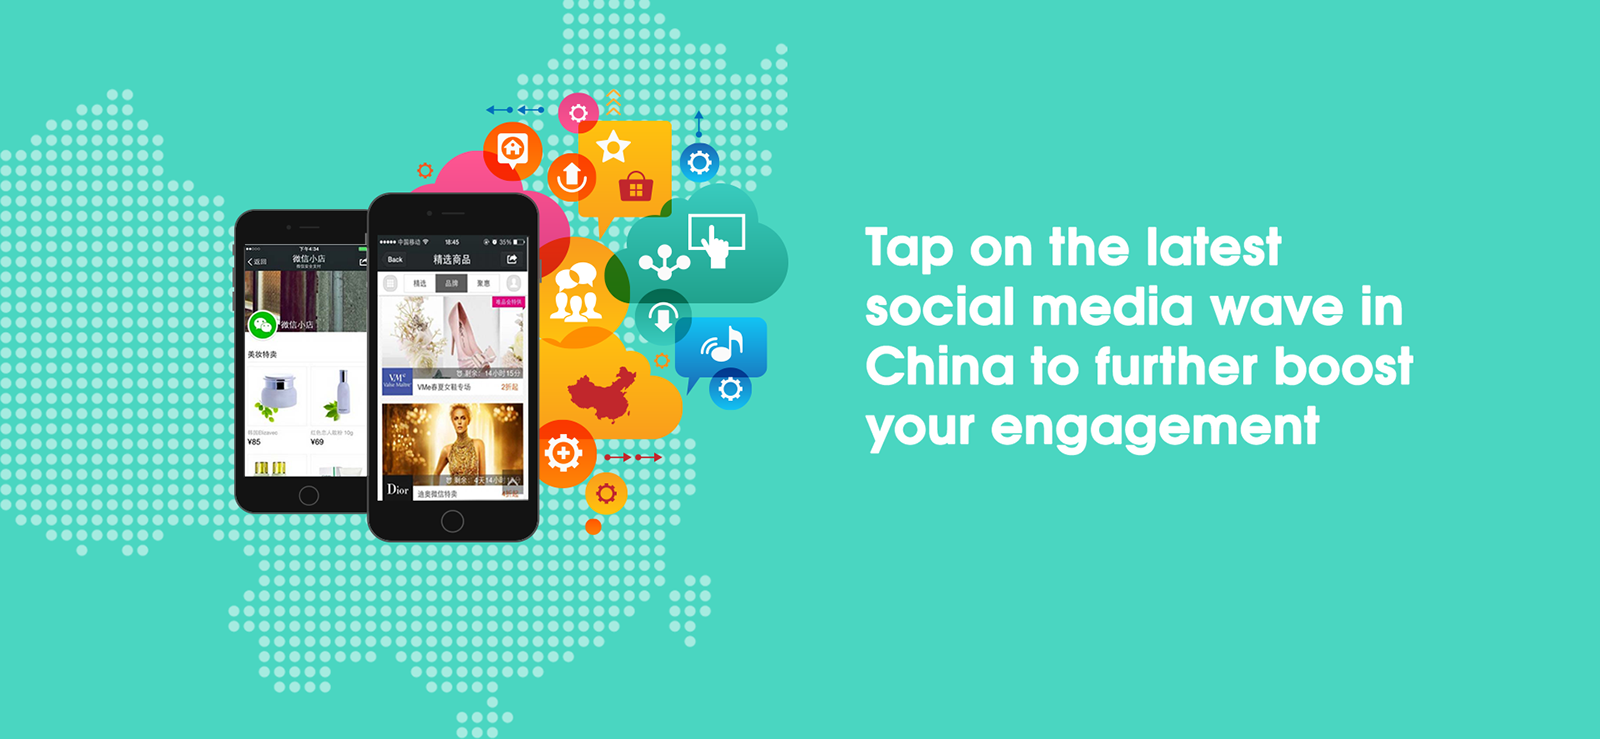 tap-on-the-latest-social-media-wave-in-china